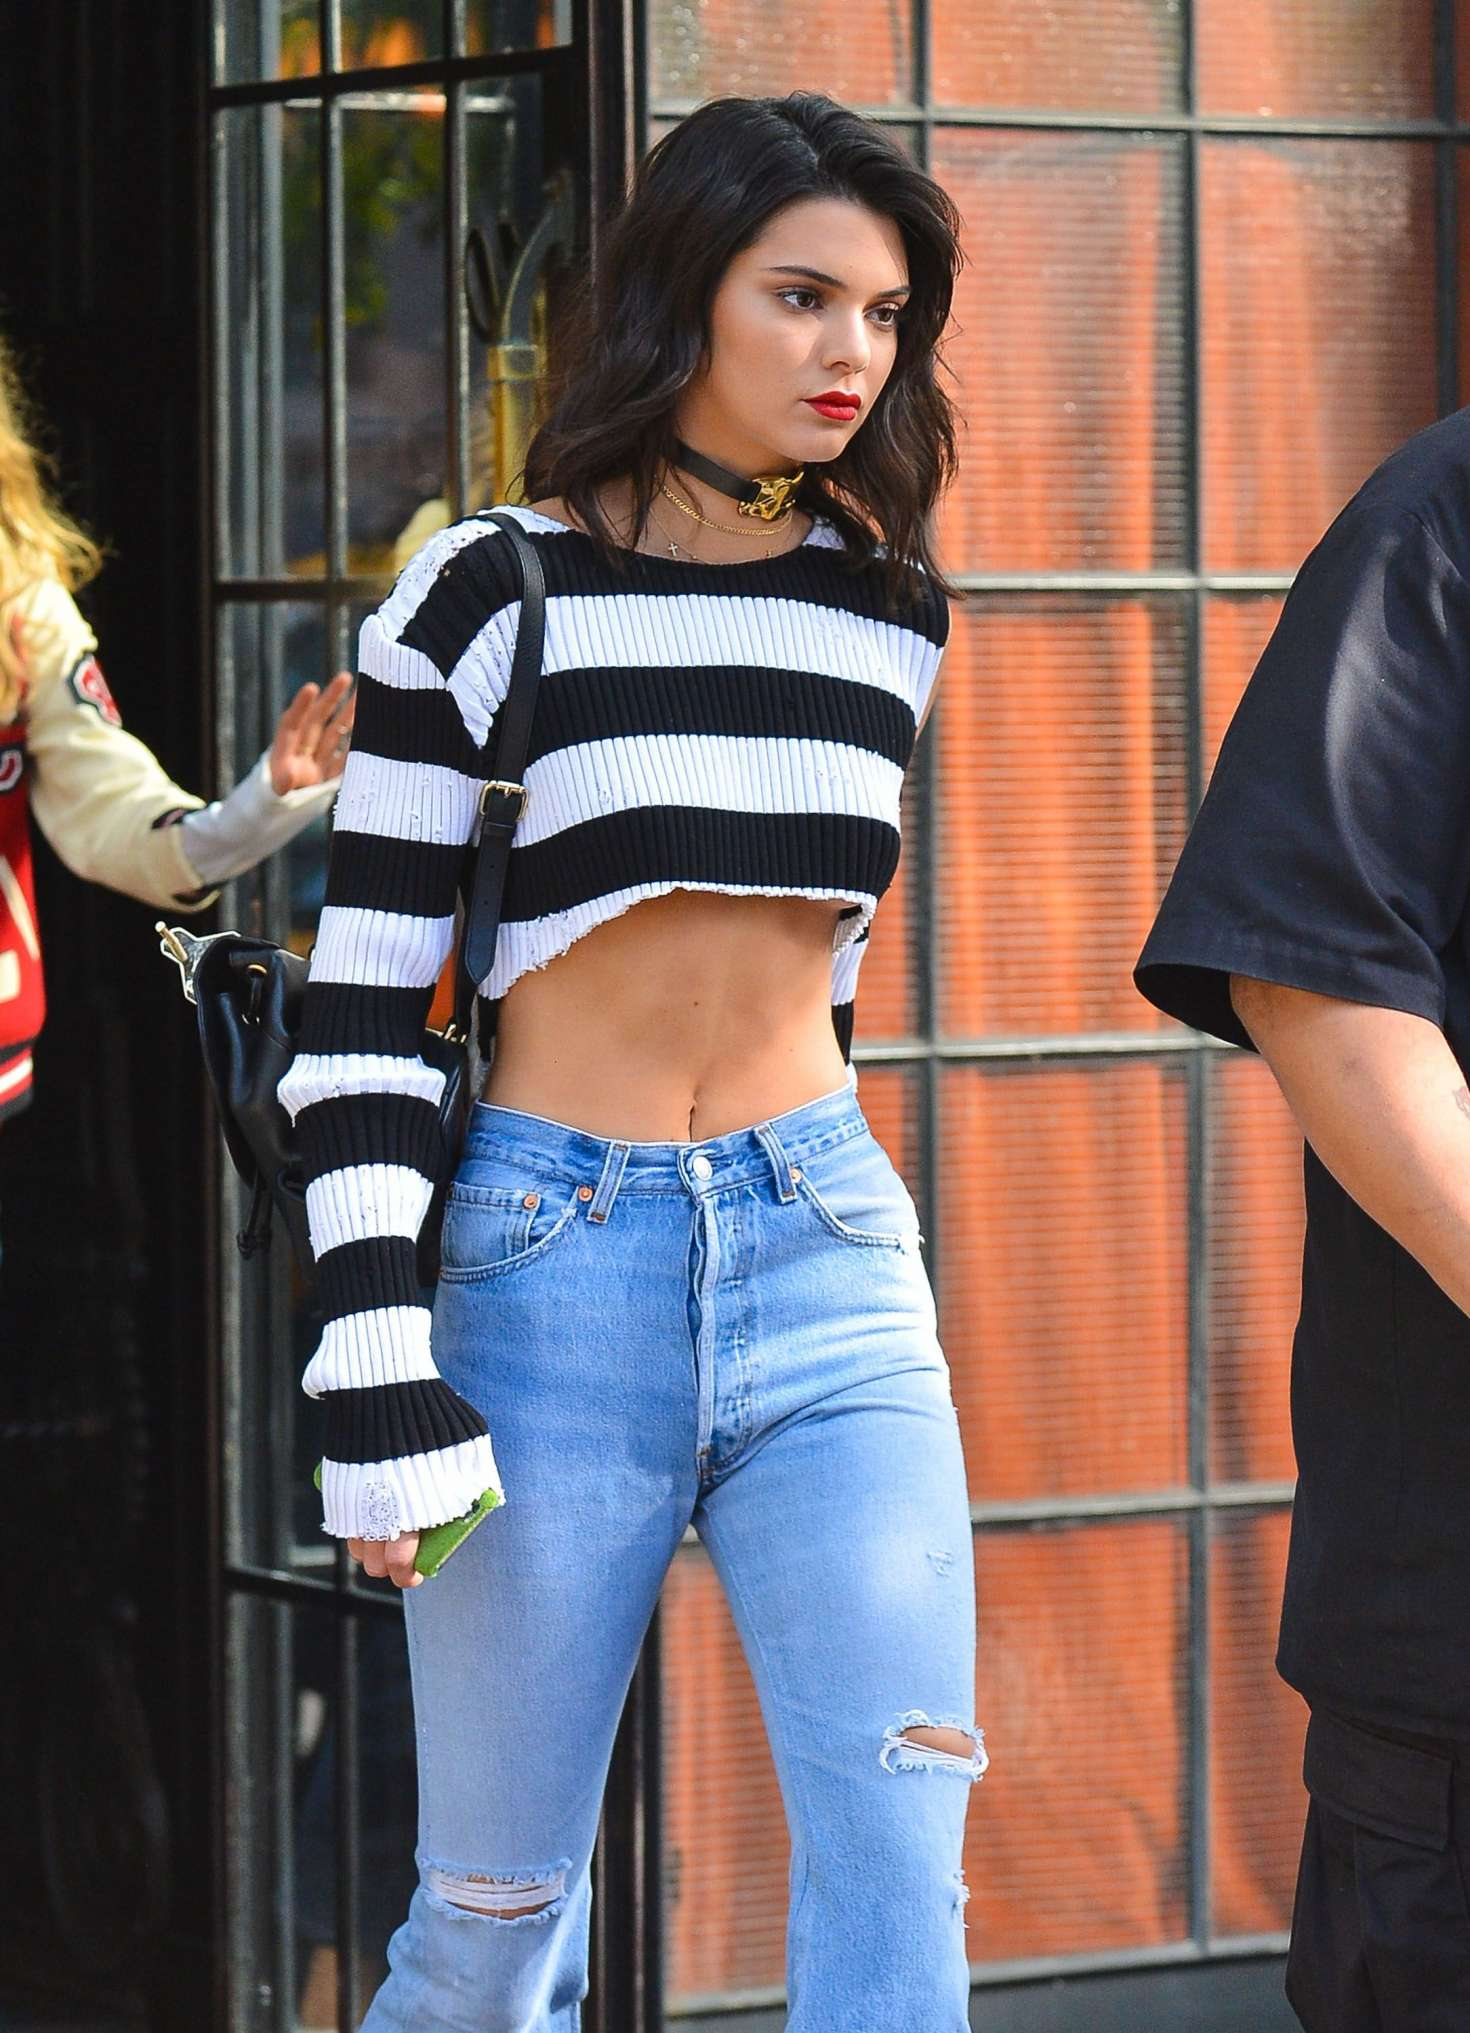 Kendall jenner steps out in new york city celebs by lianxio